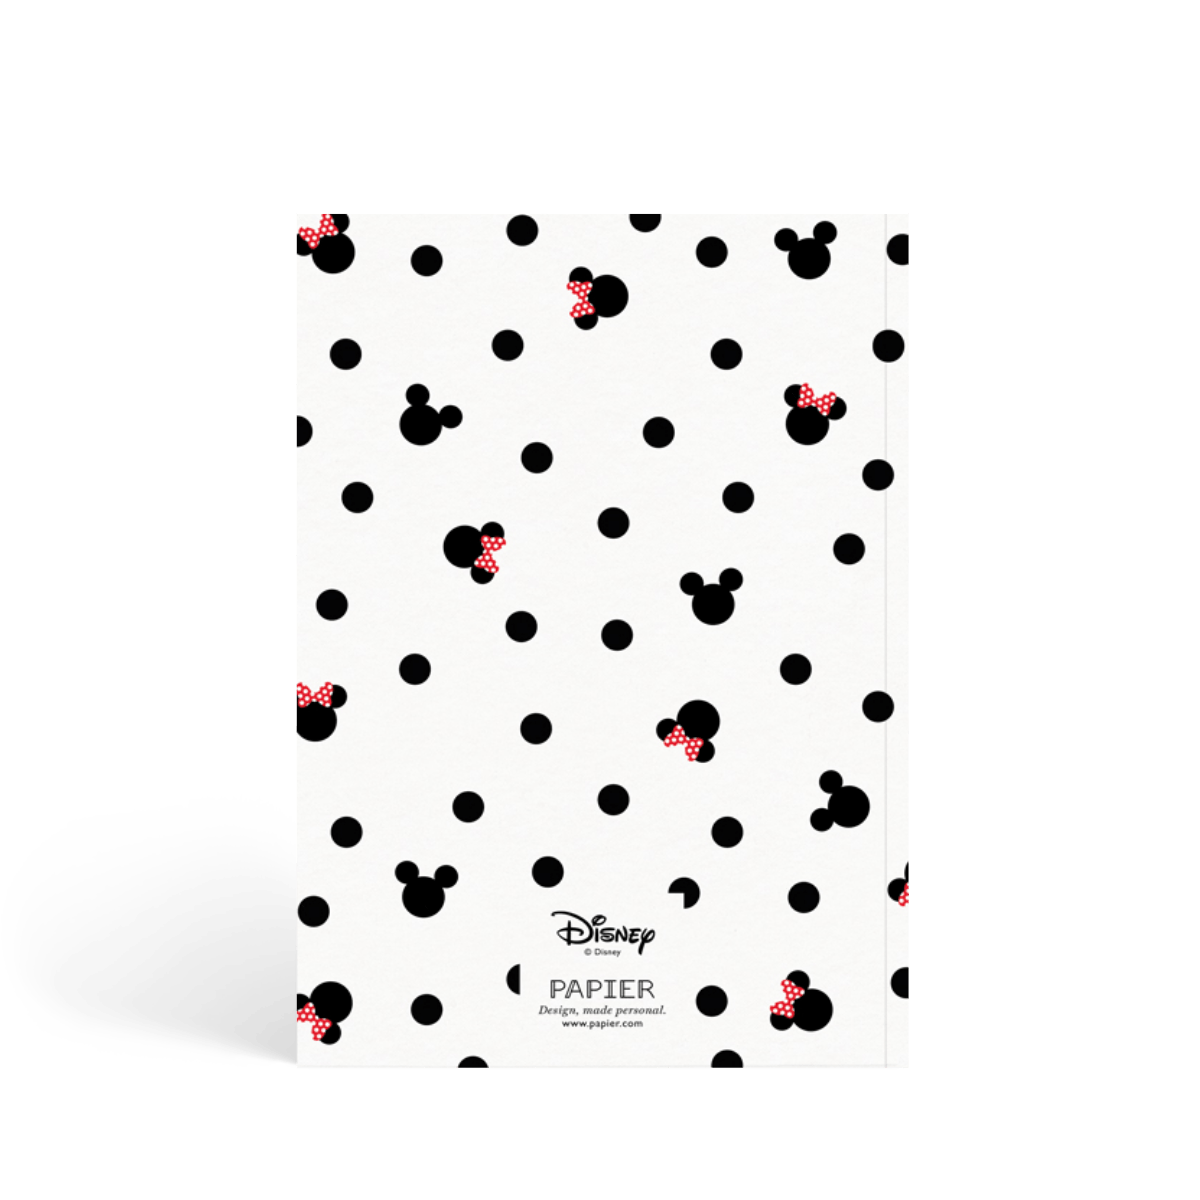 Https%3a%2f%2fwww.papier.com%2fproduct image%2f55824%2f5%2fmickey minnie mouse 13406 back 1569450742.png?ixlib=rb 1.1